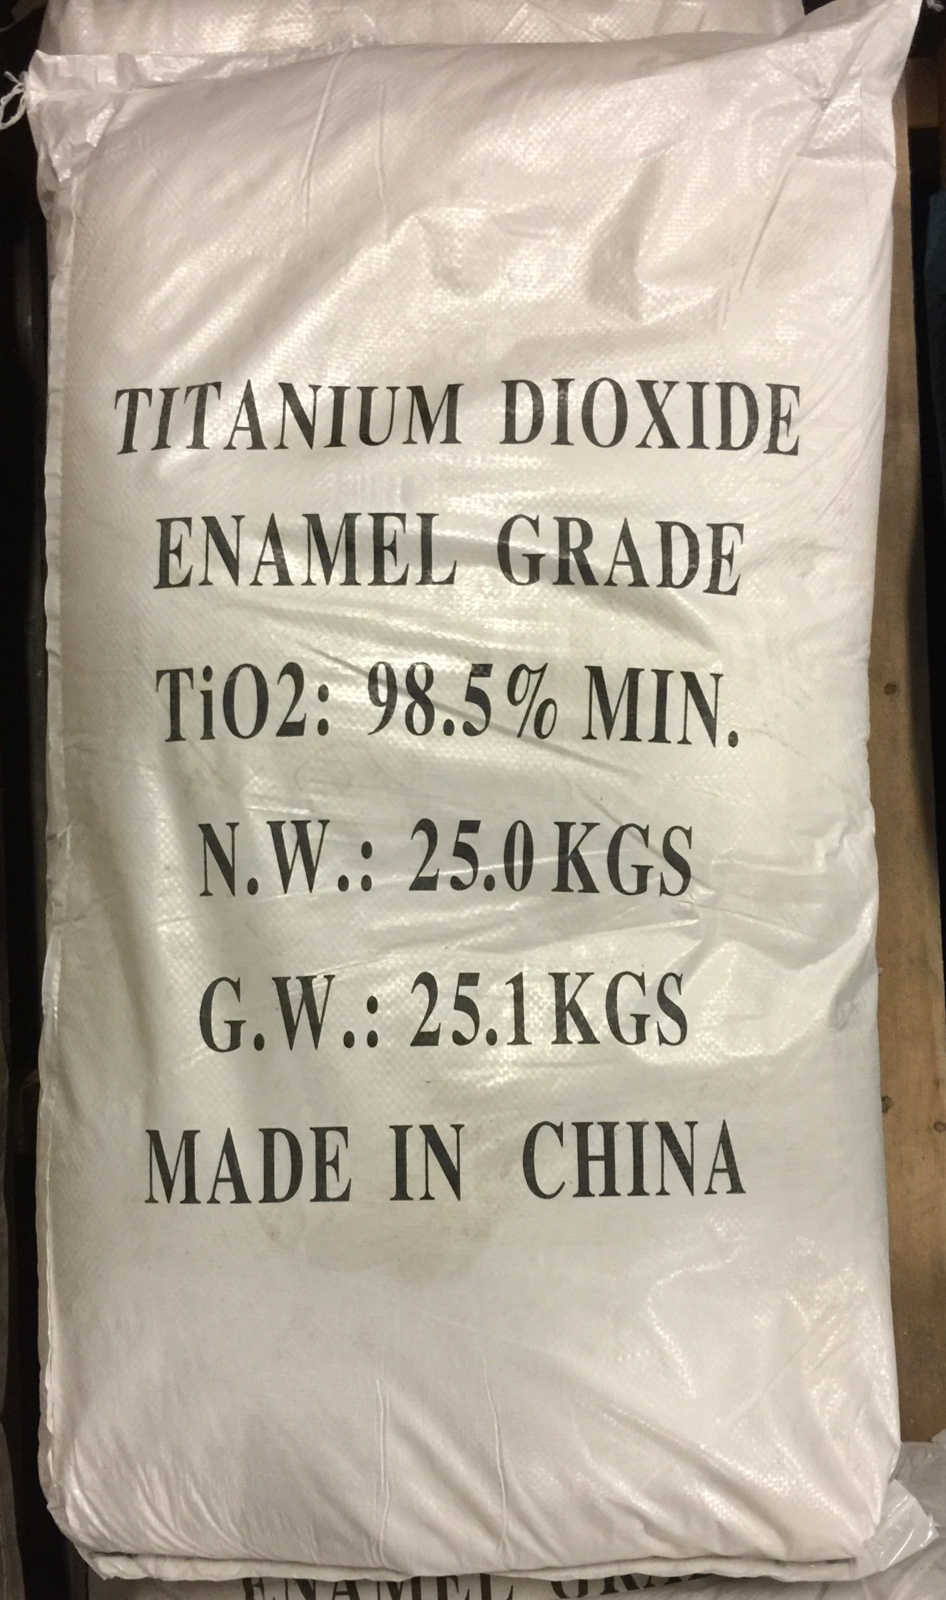 Original Container Bag of Titanium Dioxide